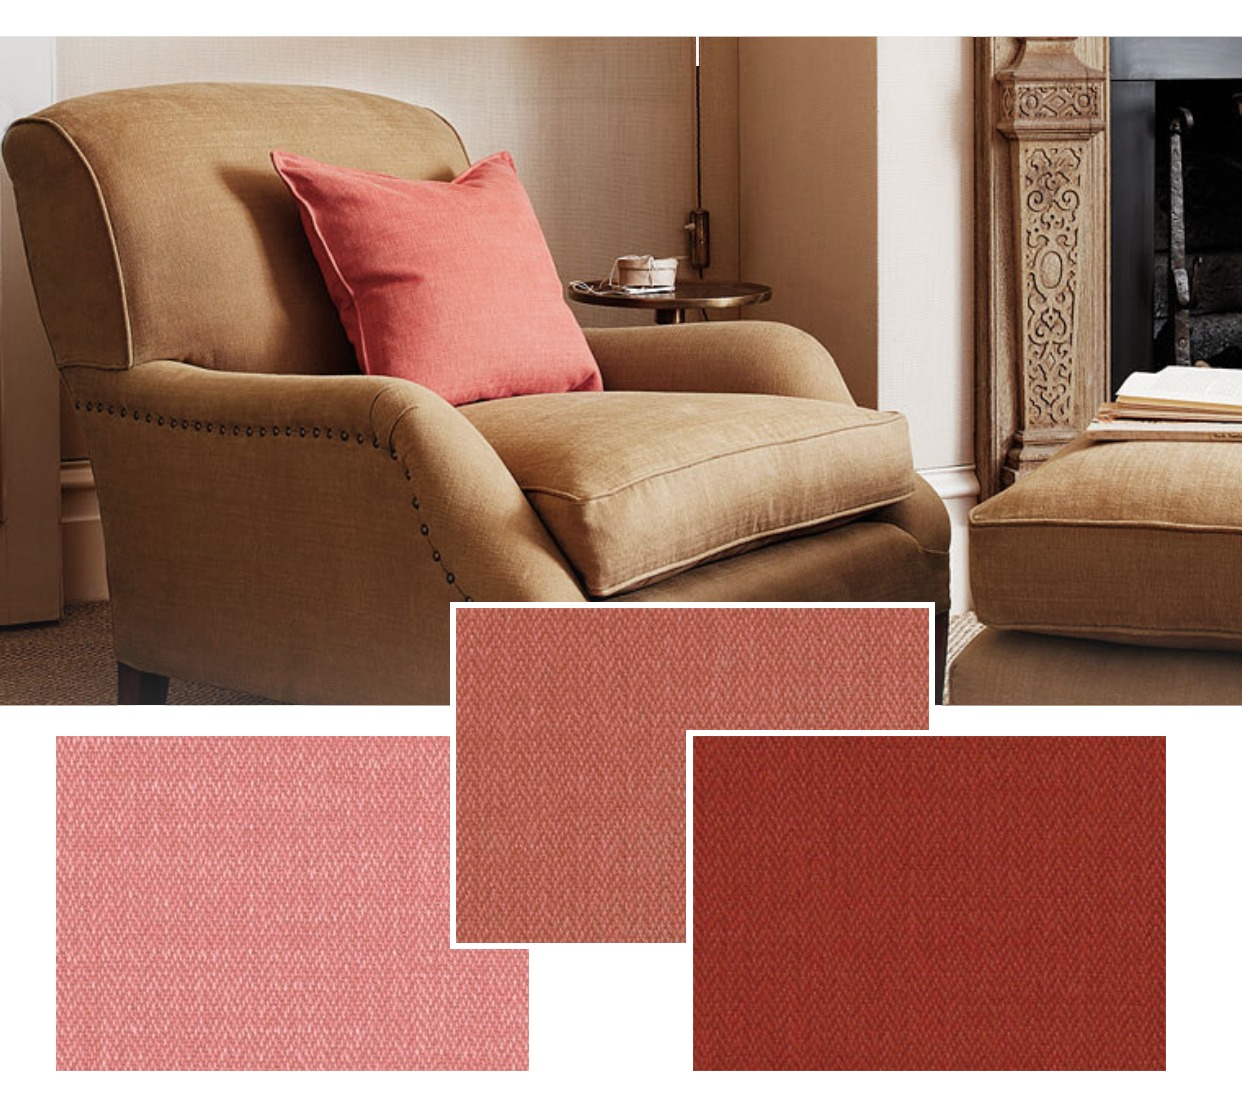 Romo Miro light brown chair with salmon colored pillow - Originals Interiors